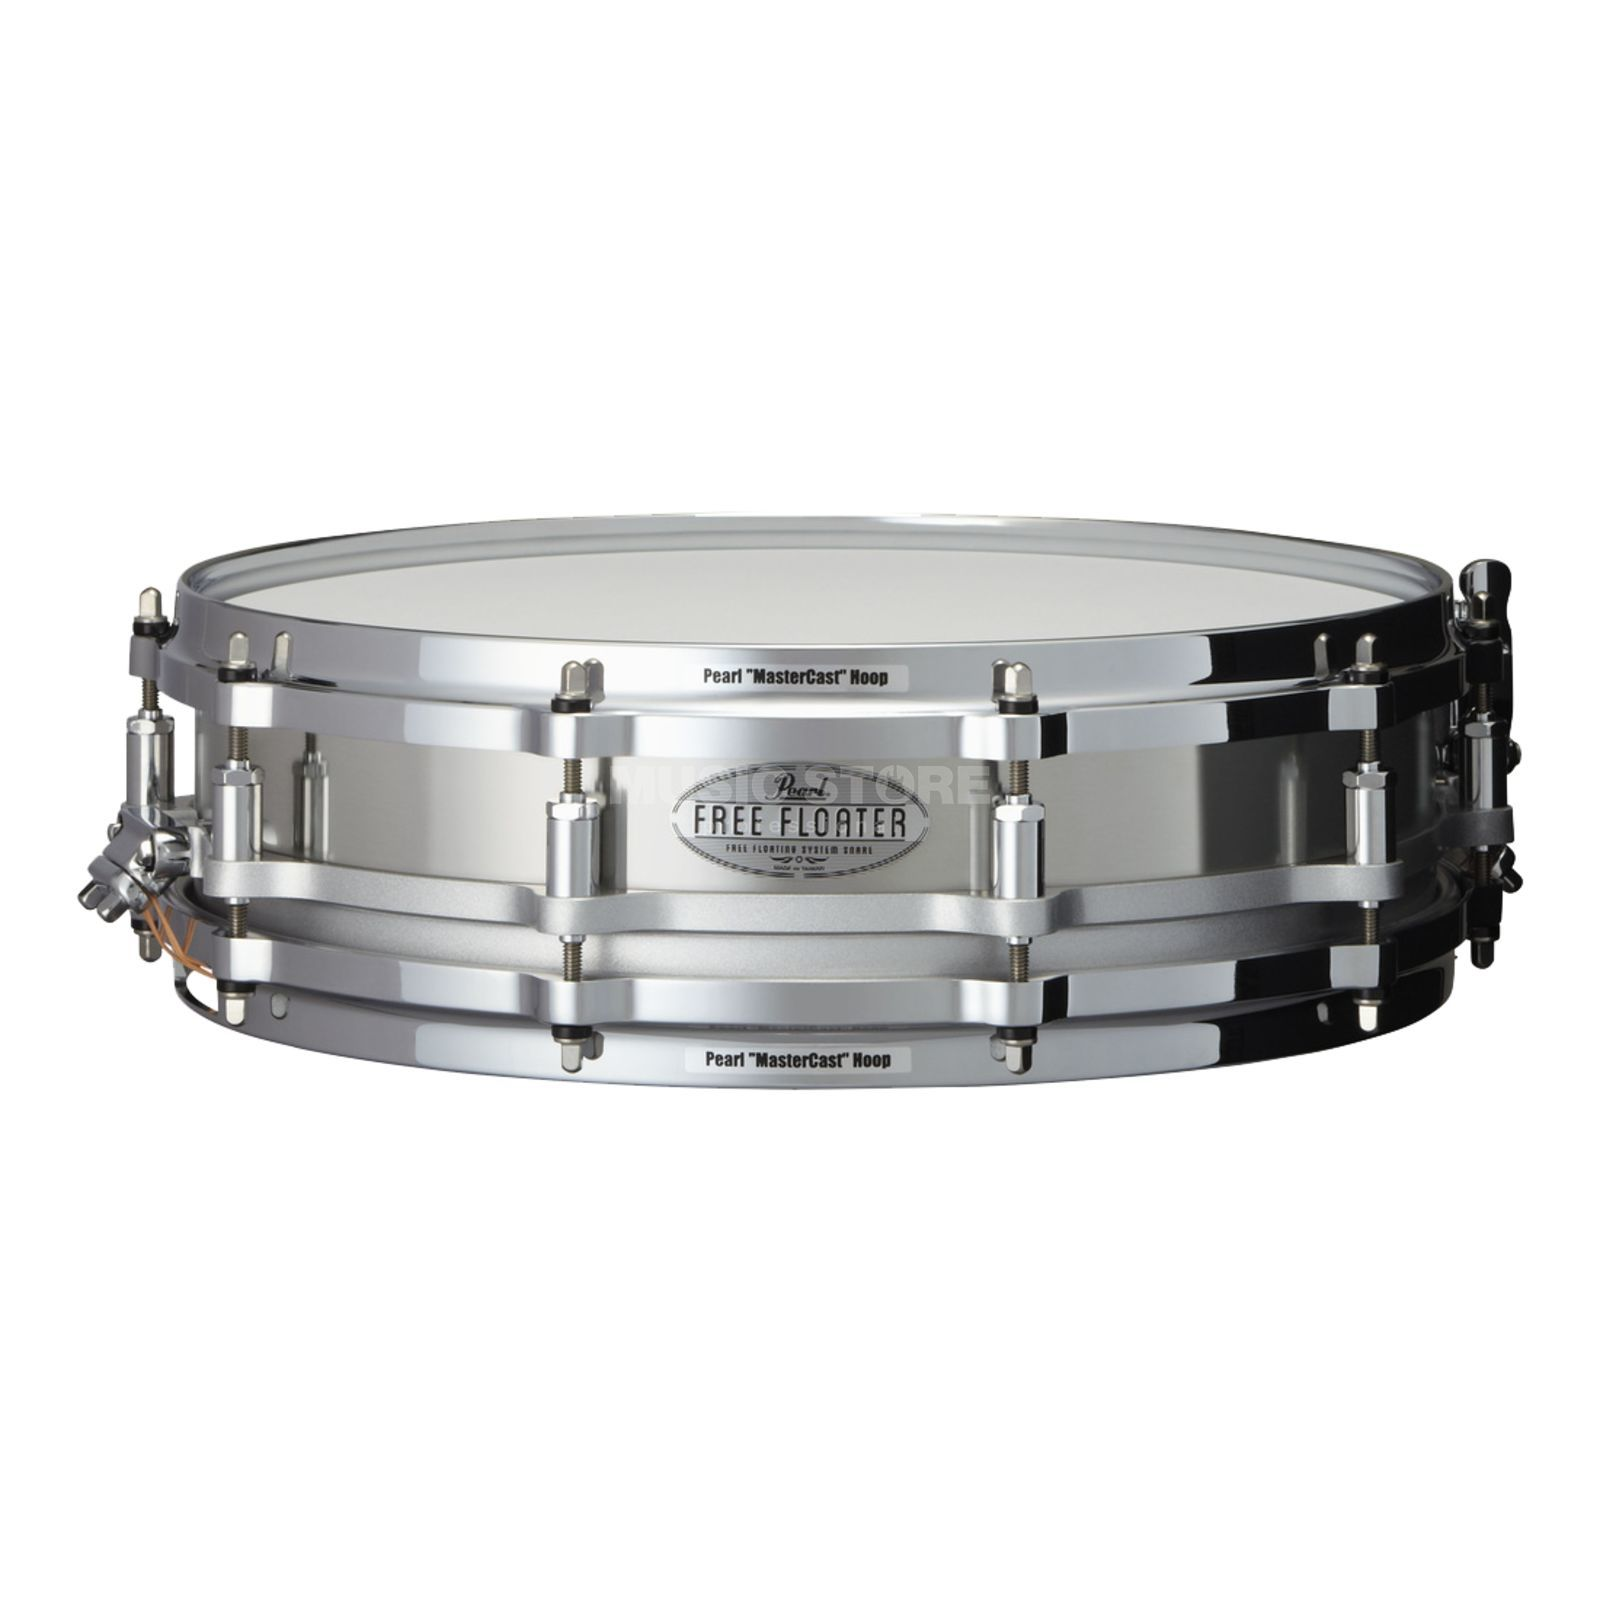 "Pearl Free Floating Snare 14""x3.5"", FTSS-1435, Stainless Steel, B-Stock Produktbillede"